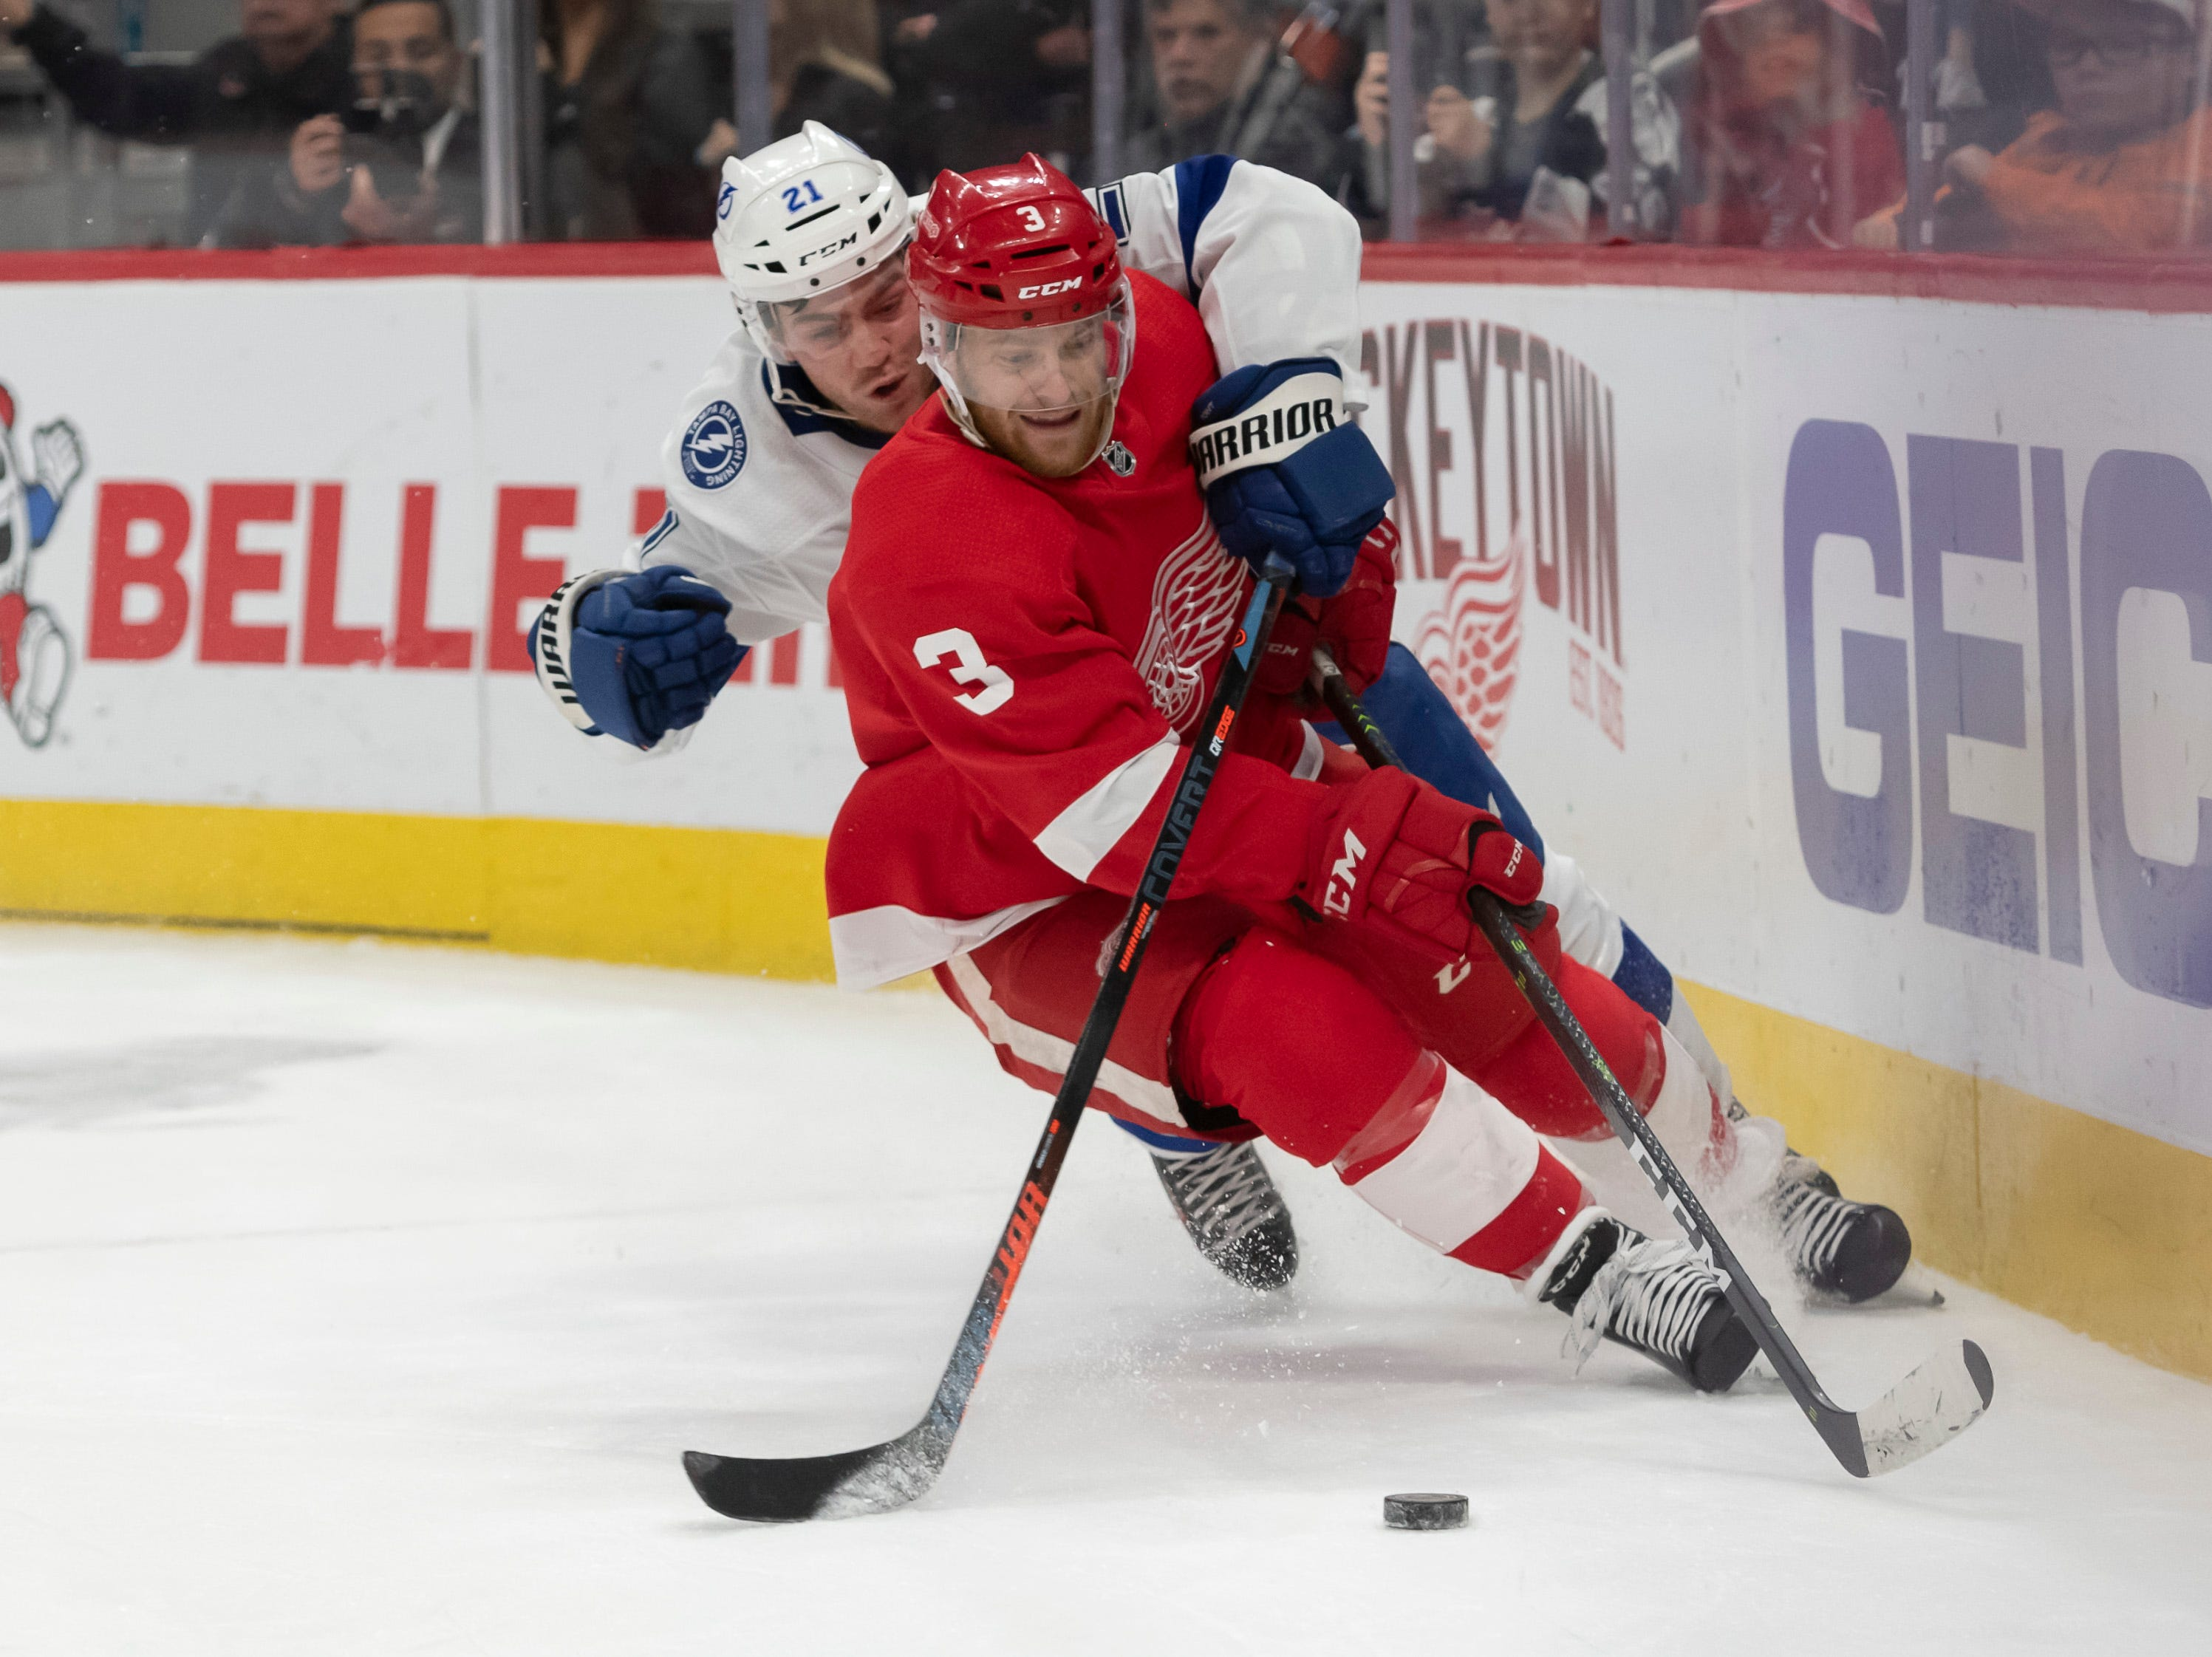 Detroit defenseman Nick Jensen and Tampa Bay center Brayden Point hit the ice while battling for the puck in the second period.             Photos are of the Detroit Red Wings vs. the Tampa Bay Lightning, at Little Caesars Arena, in Detroit, December 4, 2018.  (David Guralnick / The Detroit News)